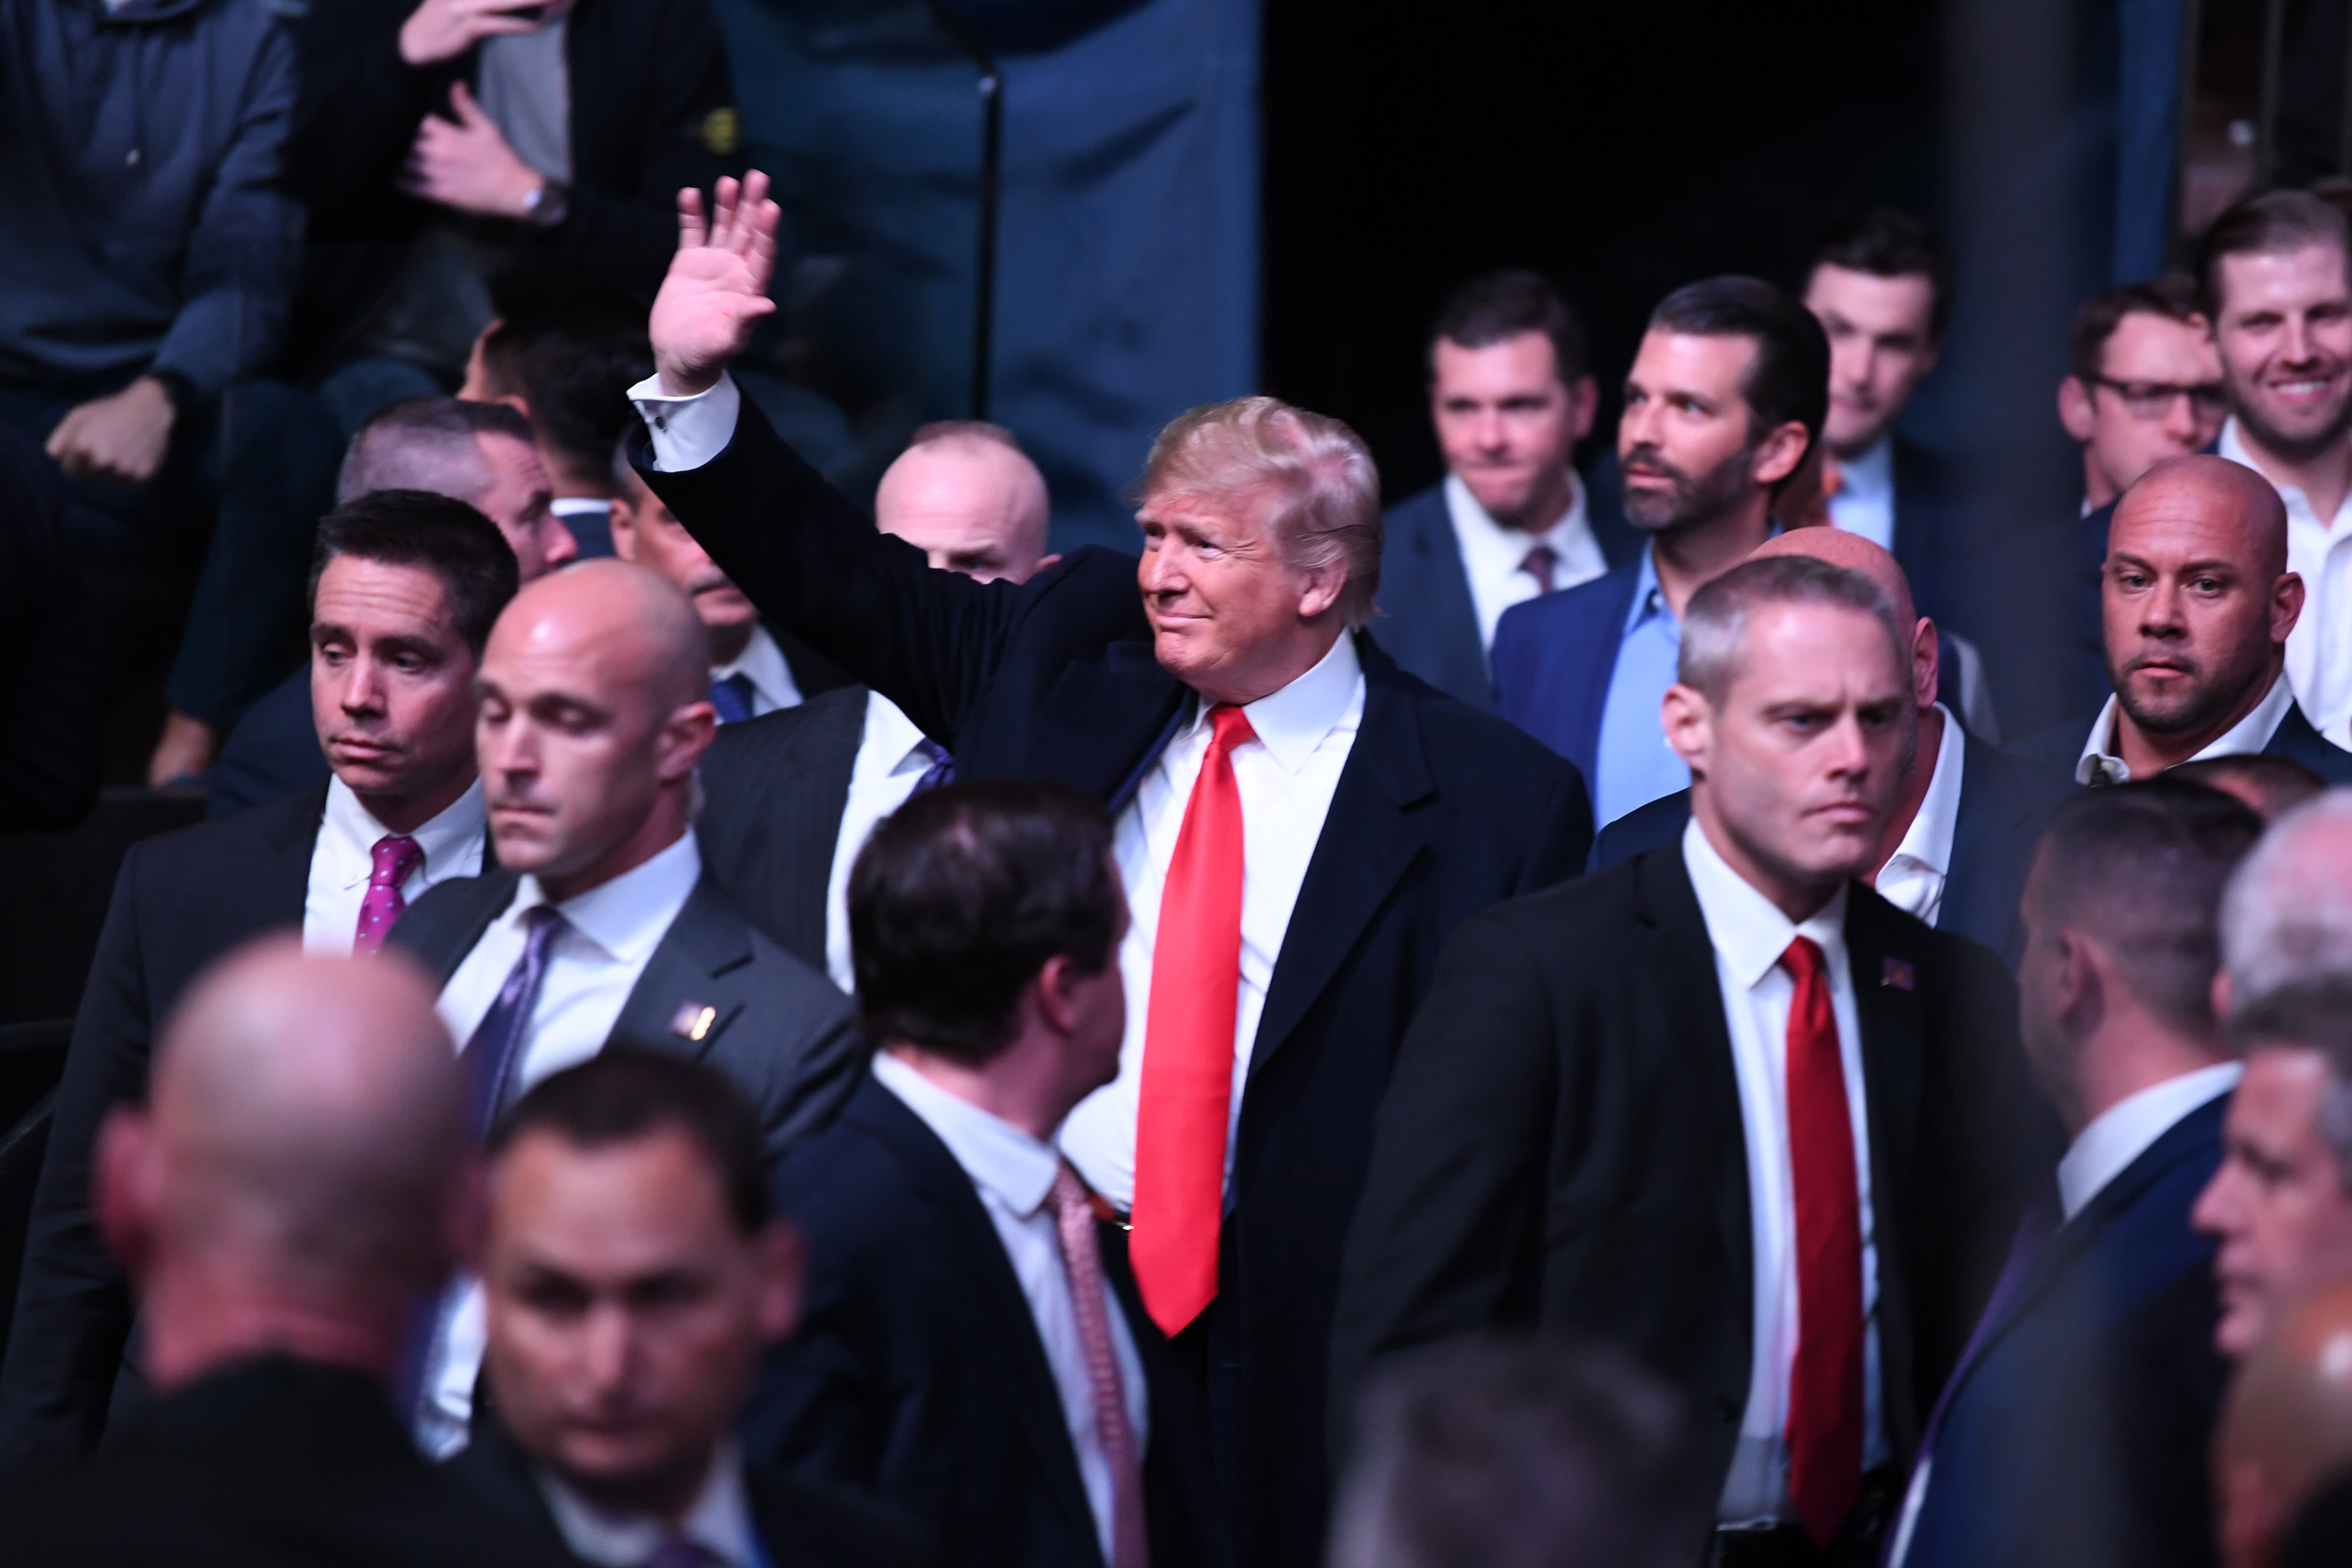 Trump cheered and booed at mixed martial arts fight in Madison Square Garden